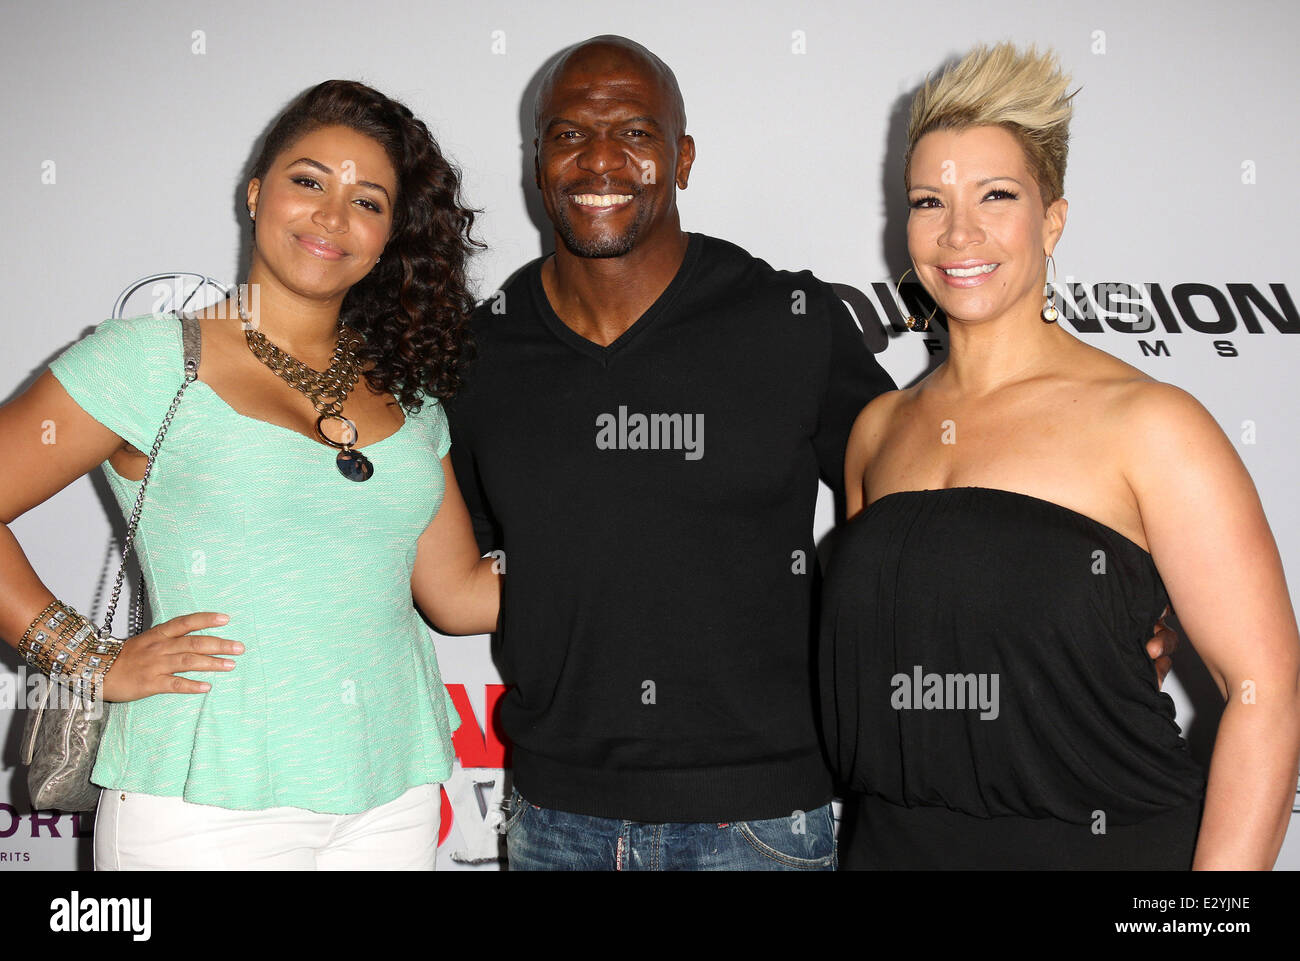 Premiere Of Scary Movie 5 At Arclight Cinemas Cinerama Dome In Stock Photo 70678202 Alamy